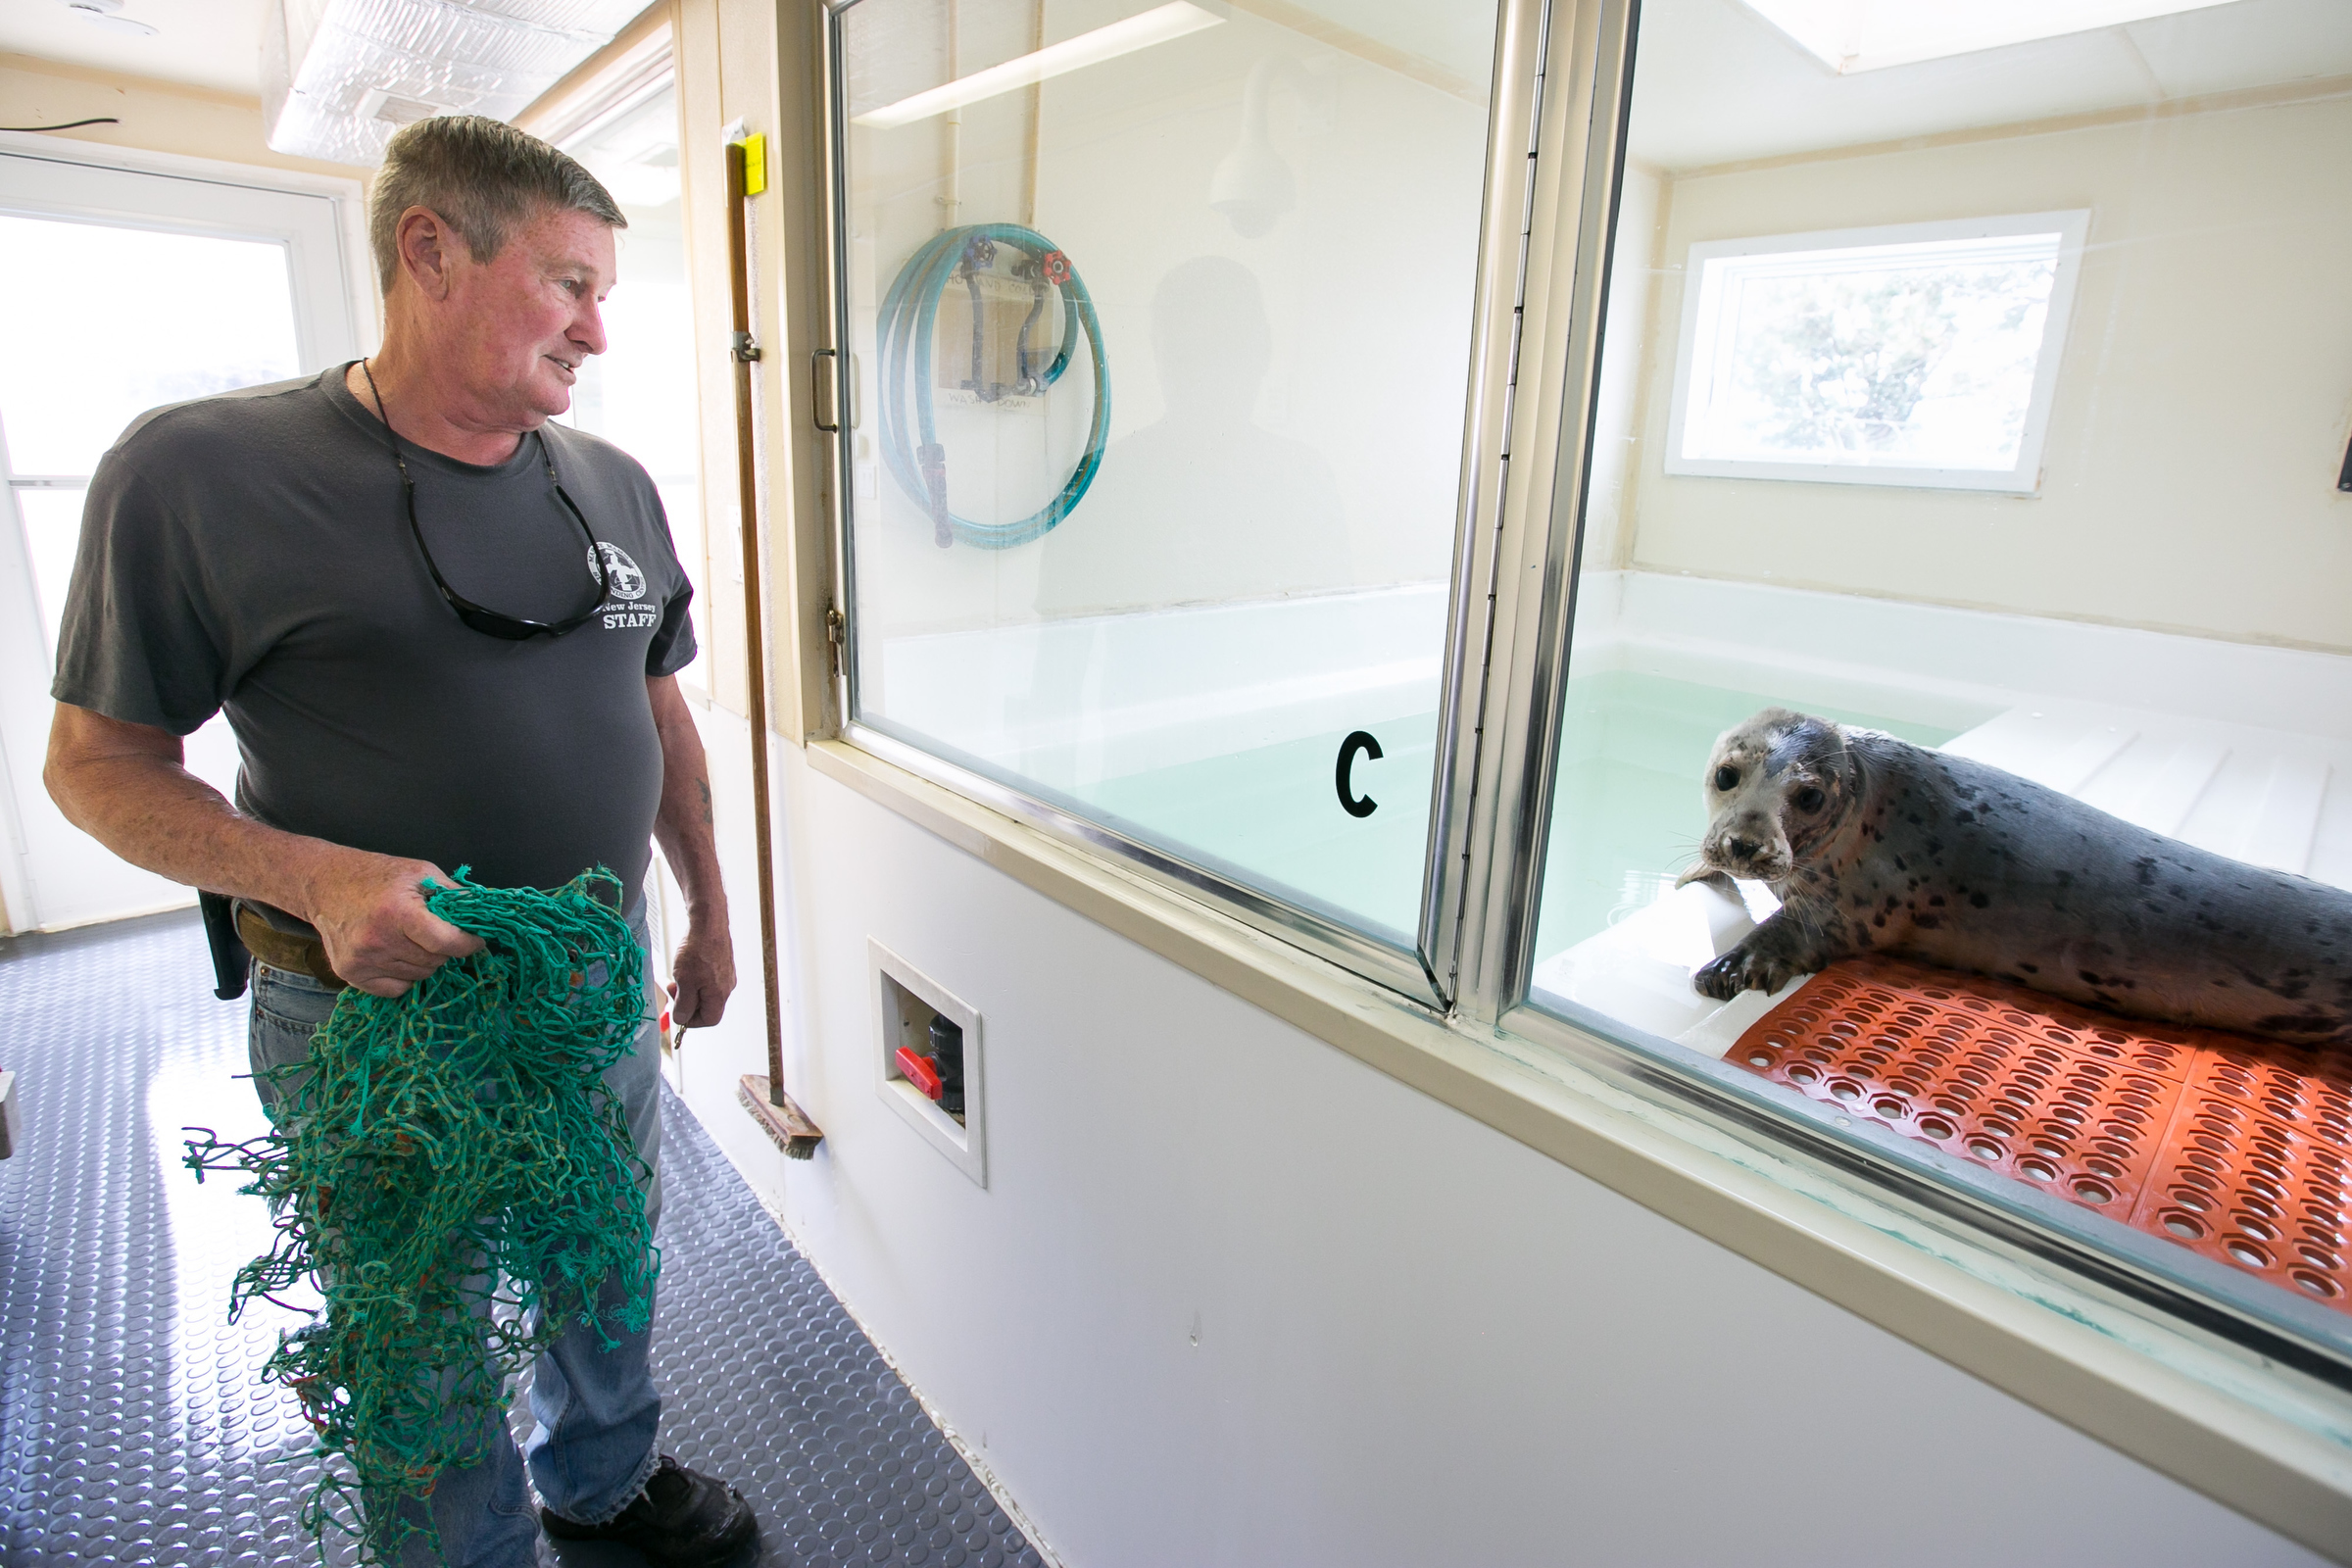 Bob Schoelkopf, founder of Marine Mammal Stranding Center, visits a sick seal, who is now recovering at the facility, in Brigantine, New Jersey, Wednesday, May 23, 2018. This seal was not damaged by plastics. JESSICA GRIFFIN / Staff Photographer